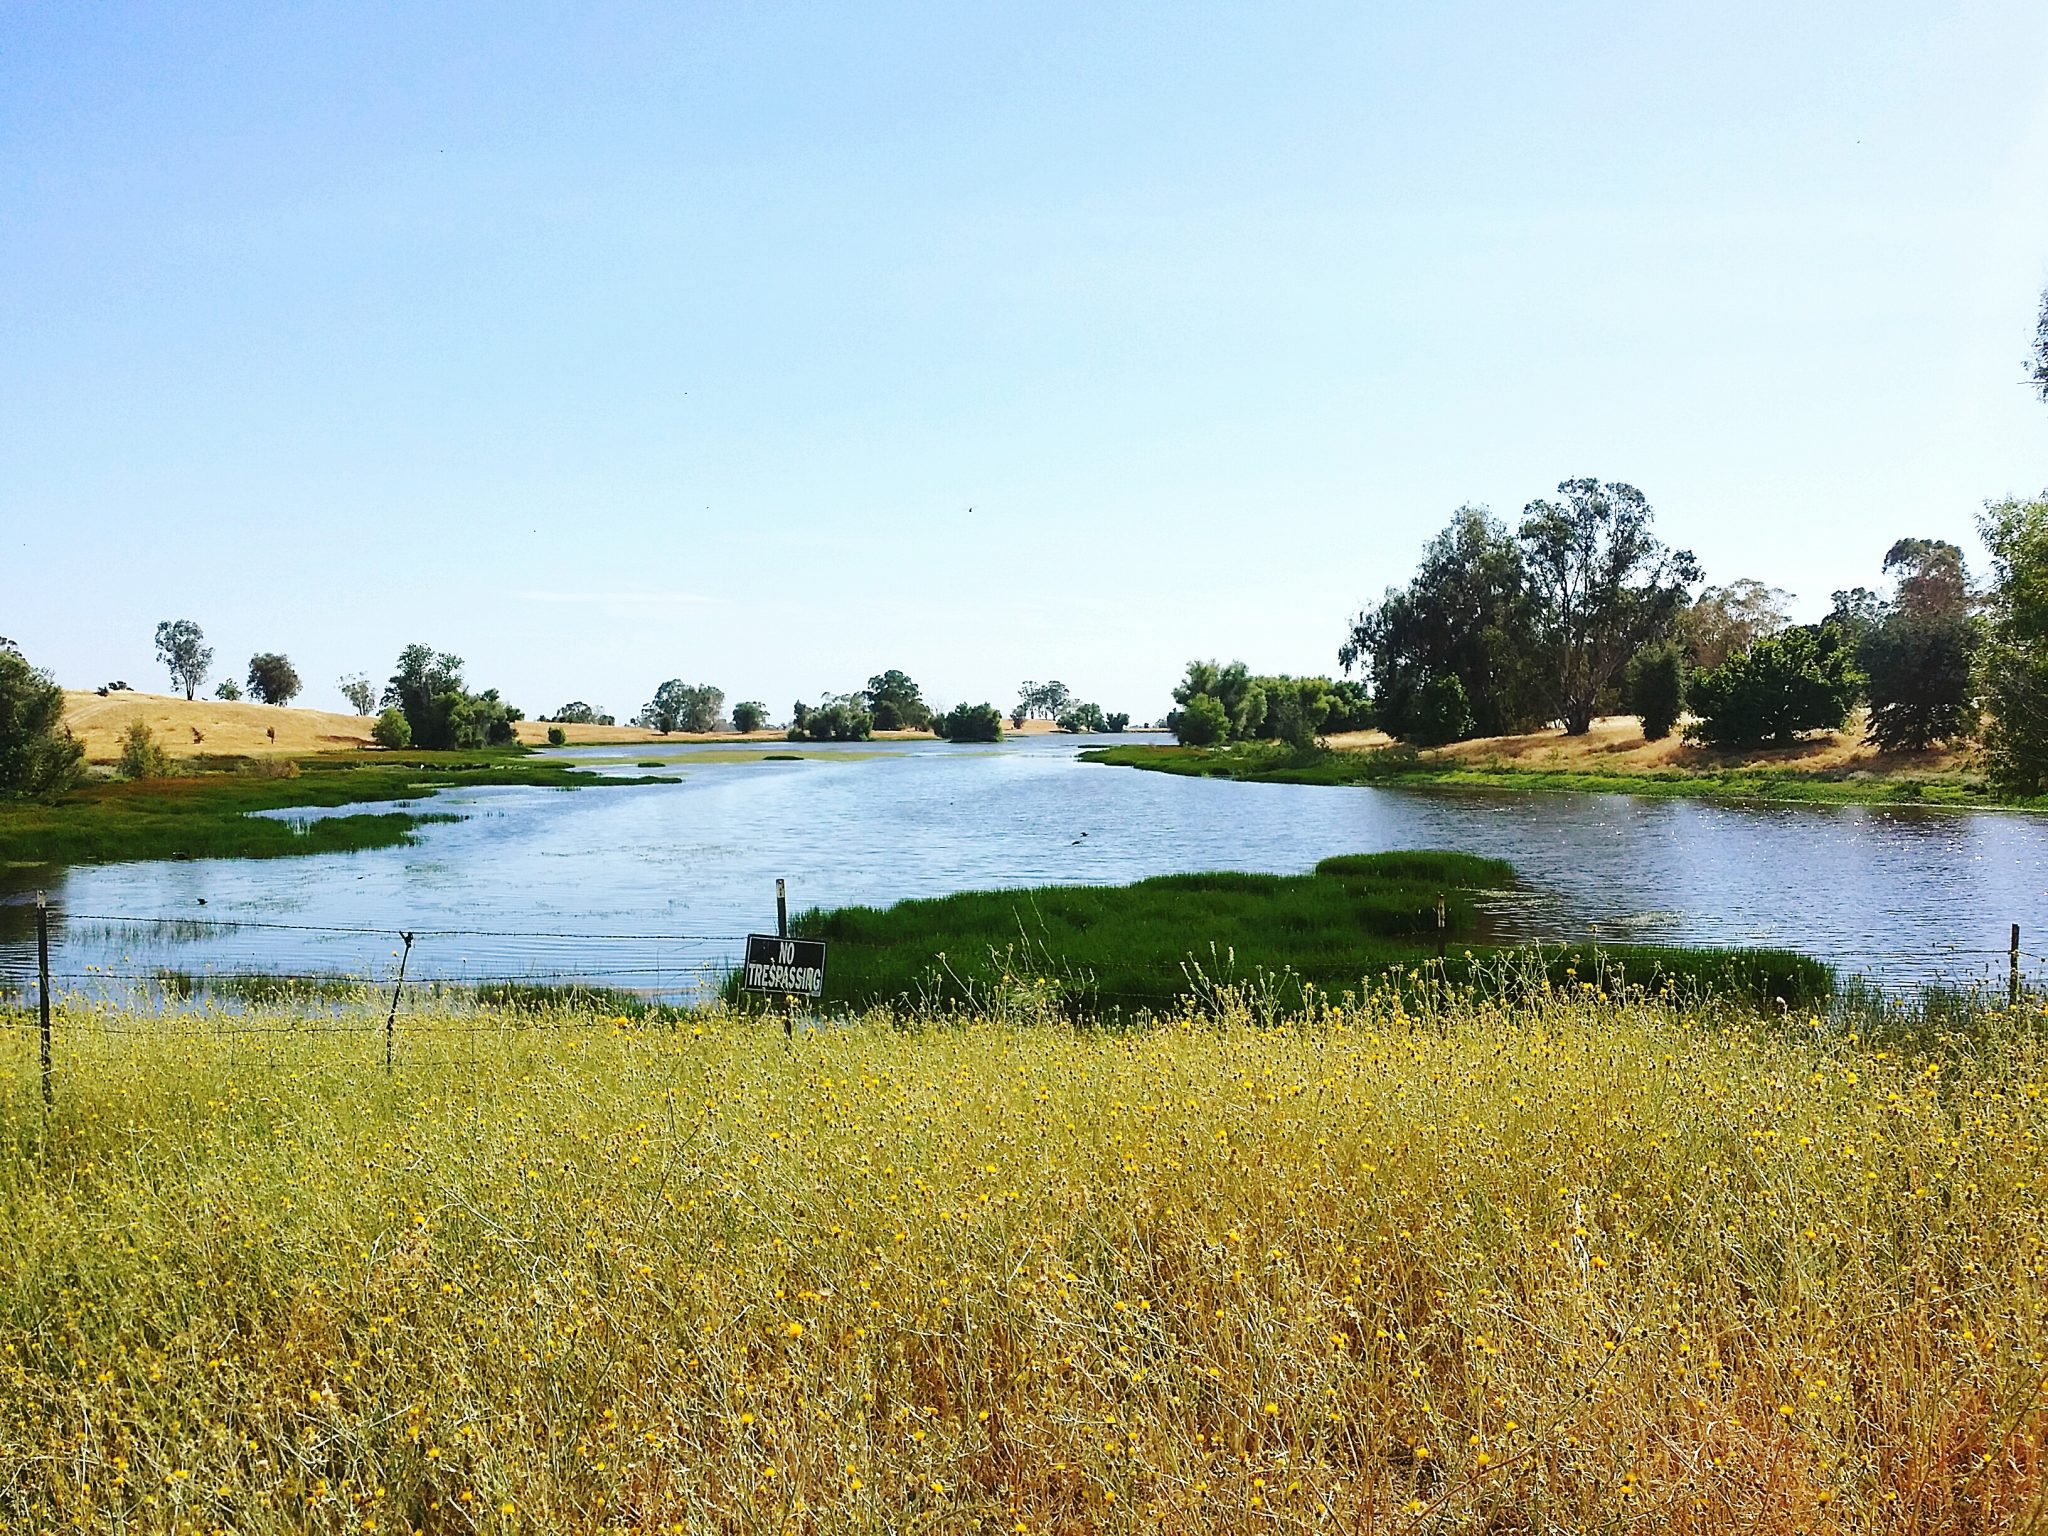 Removal of Unwanted Fish in Recreational Fish Ponds